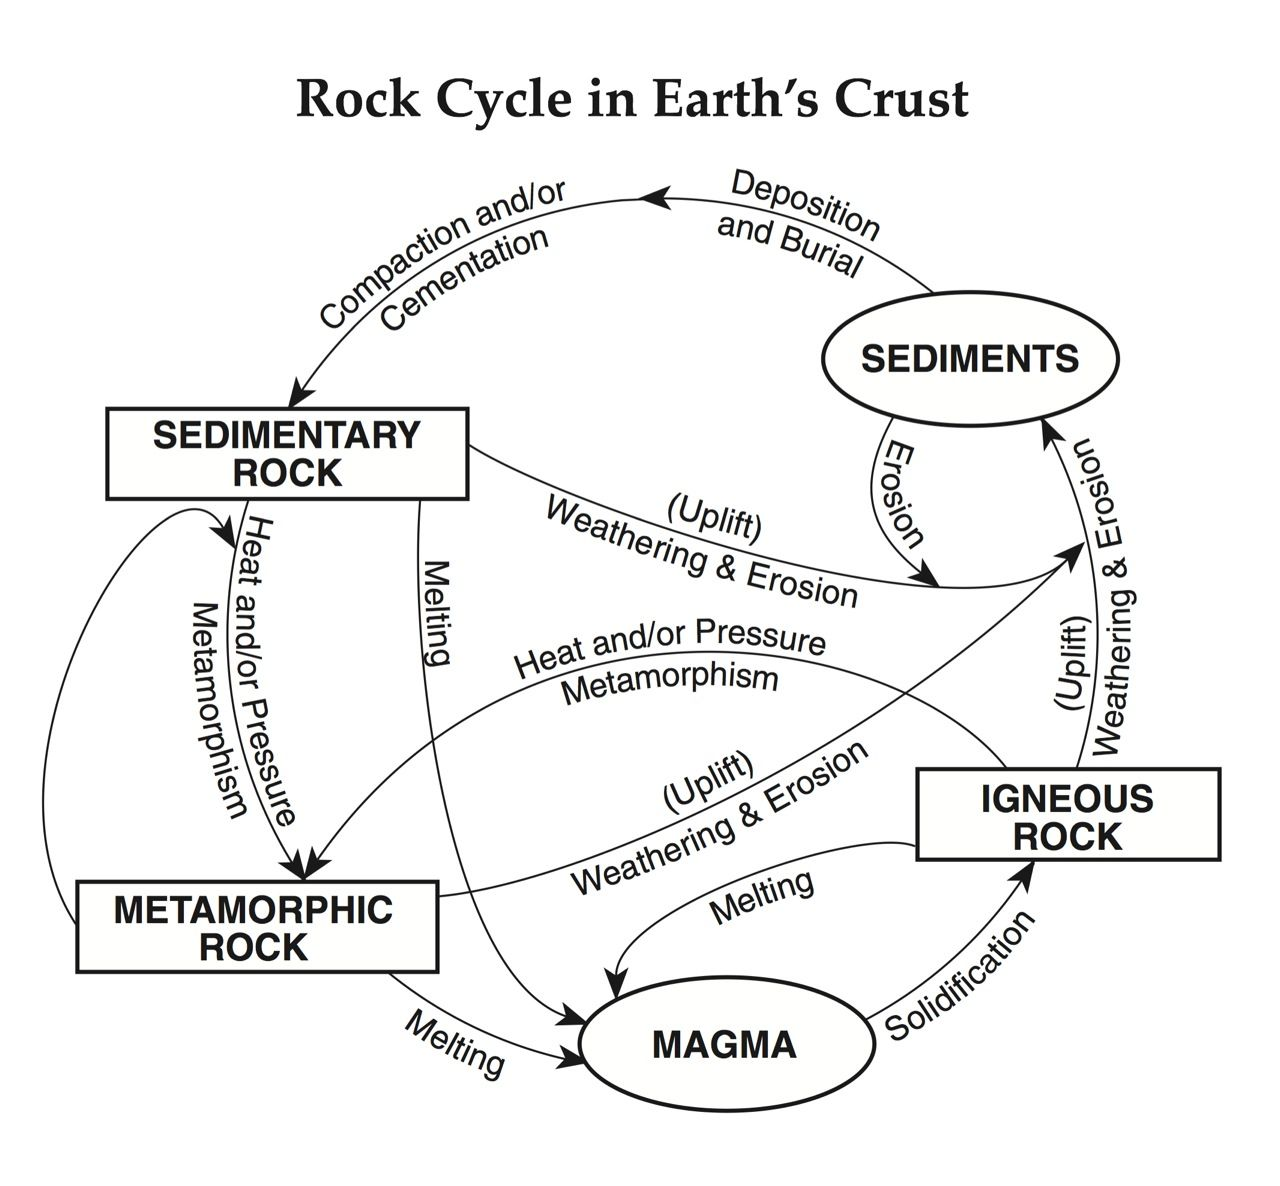 Sample Questions On Rock Cycle And Earth With Diagrams Google Search Rock Cycle Rock Cycle Project Rock Cycle Activity